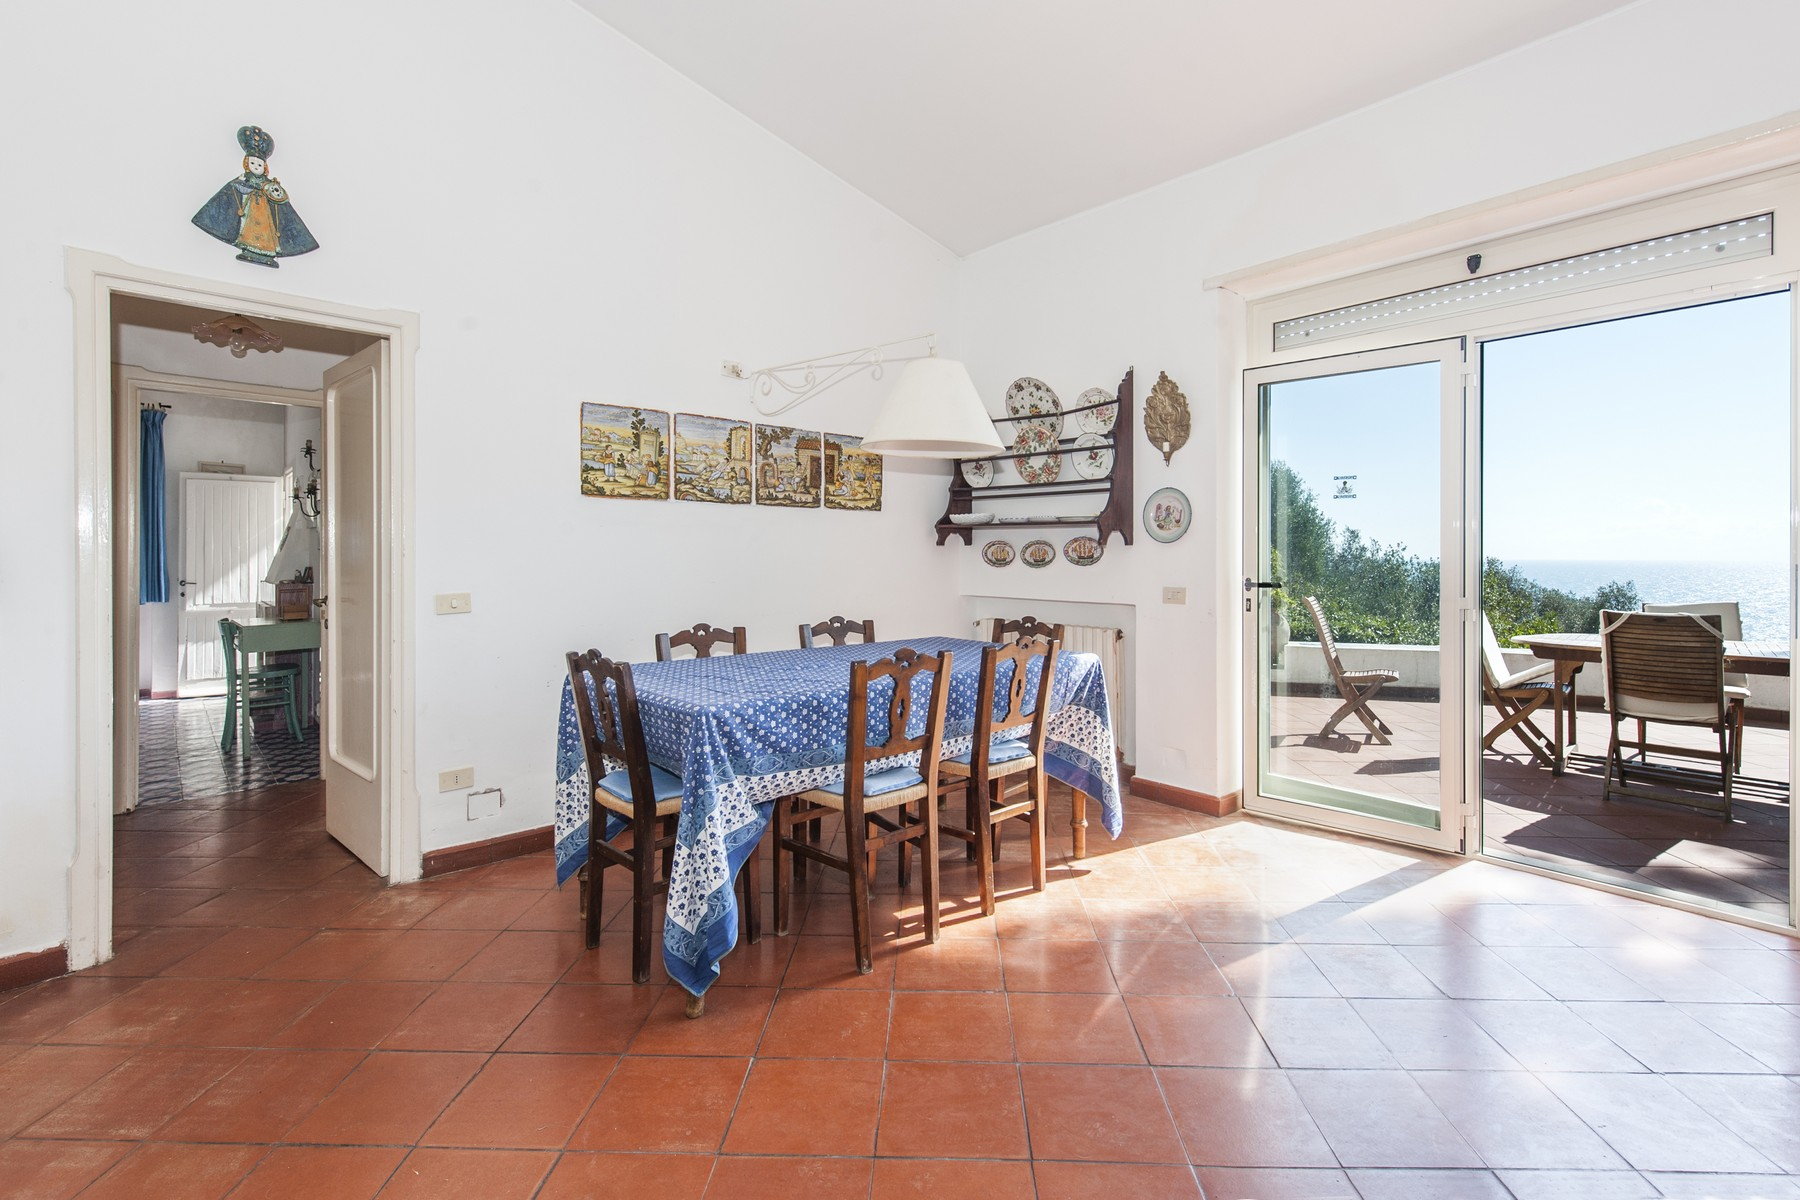 Additional photo for property listing at Charming villa overlooking the sea in the Circeo National Park Via del Faro San Felice Circeo, Latina 04017 Italie